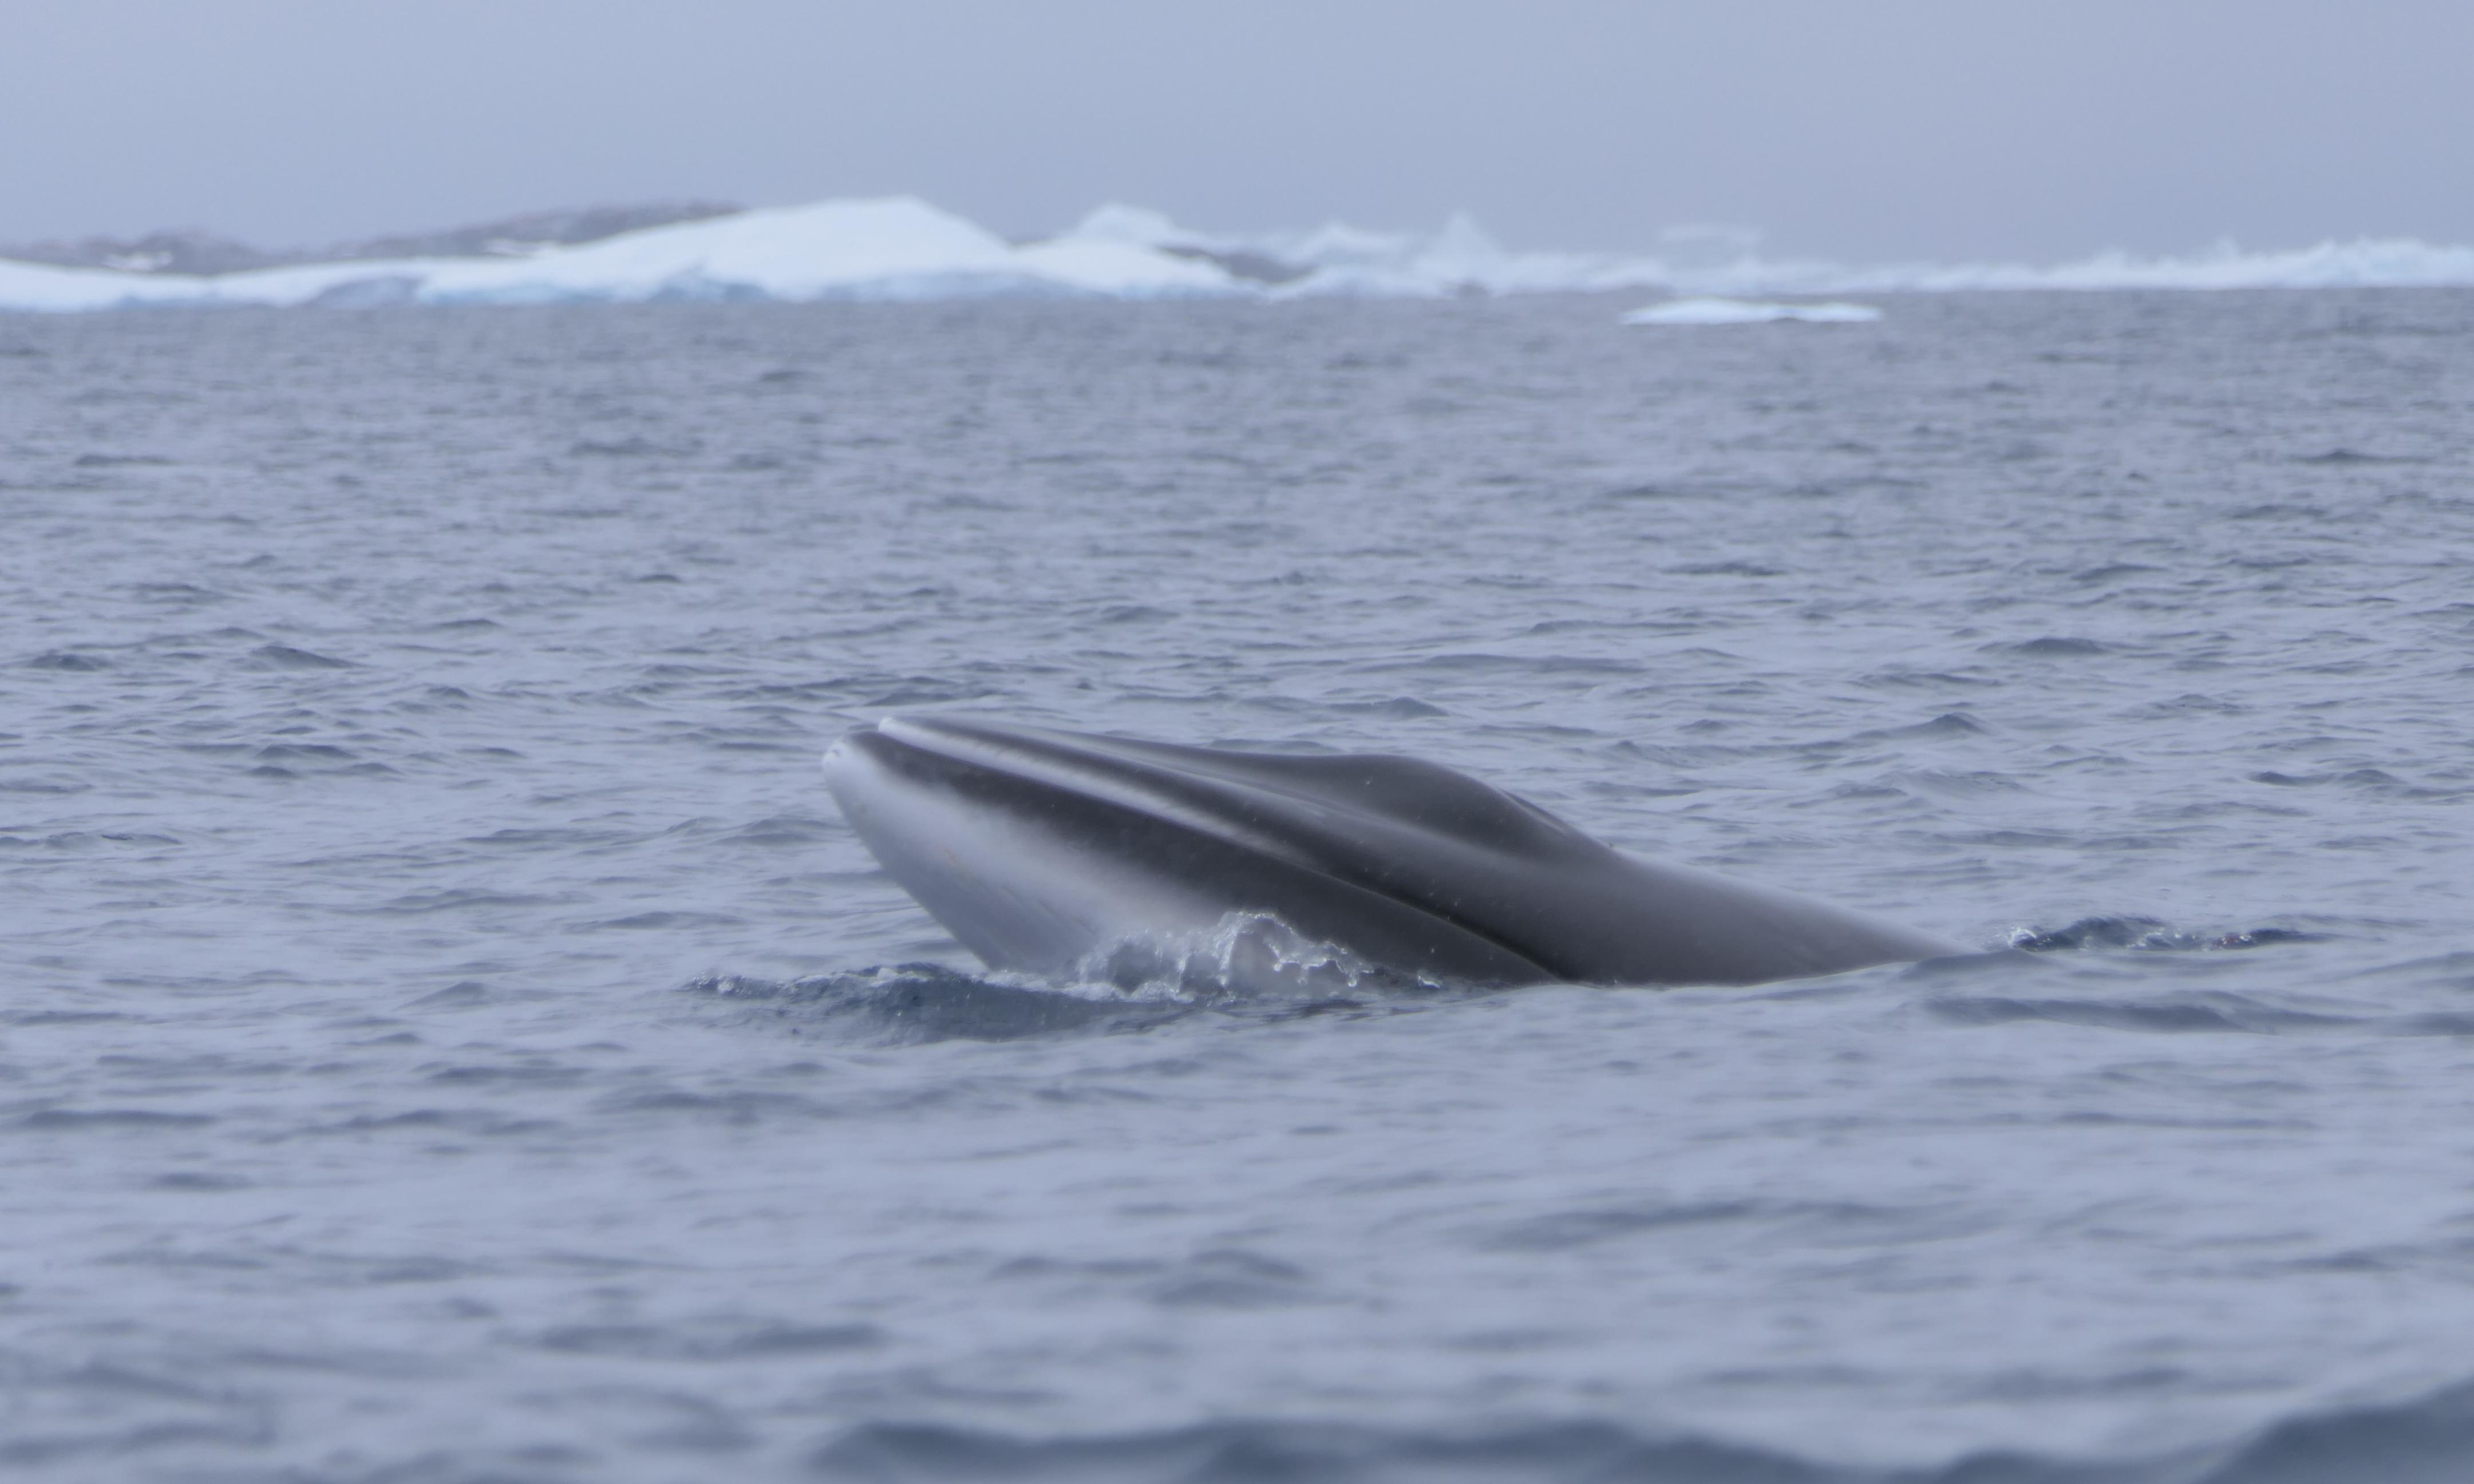 Japan killed 50 whales in Antarctic protected area, data shows